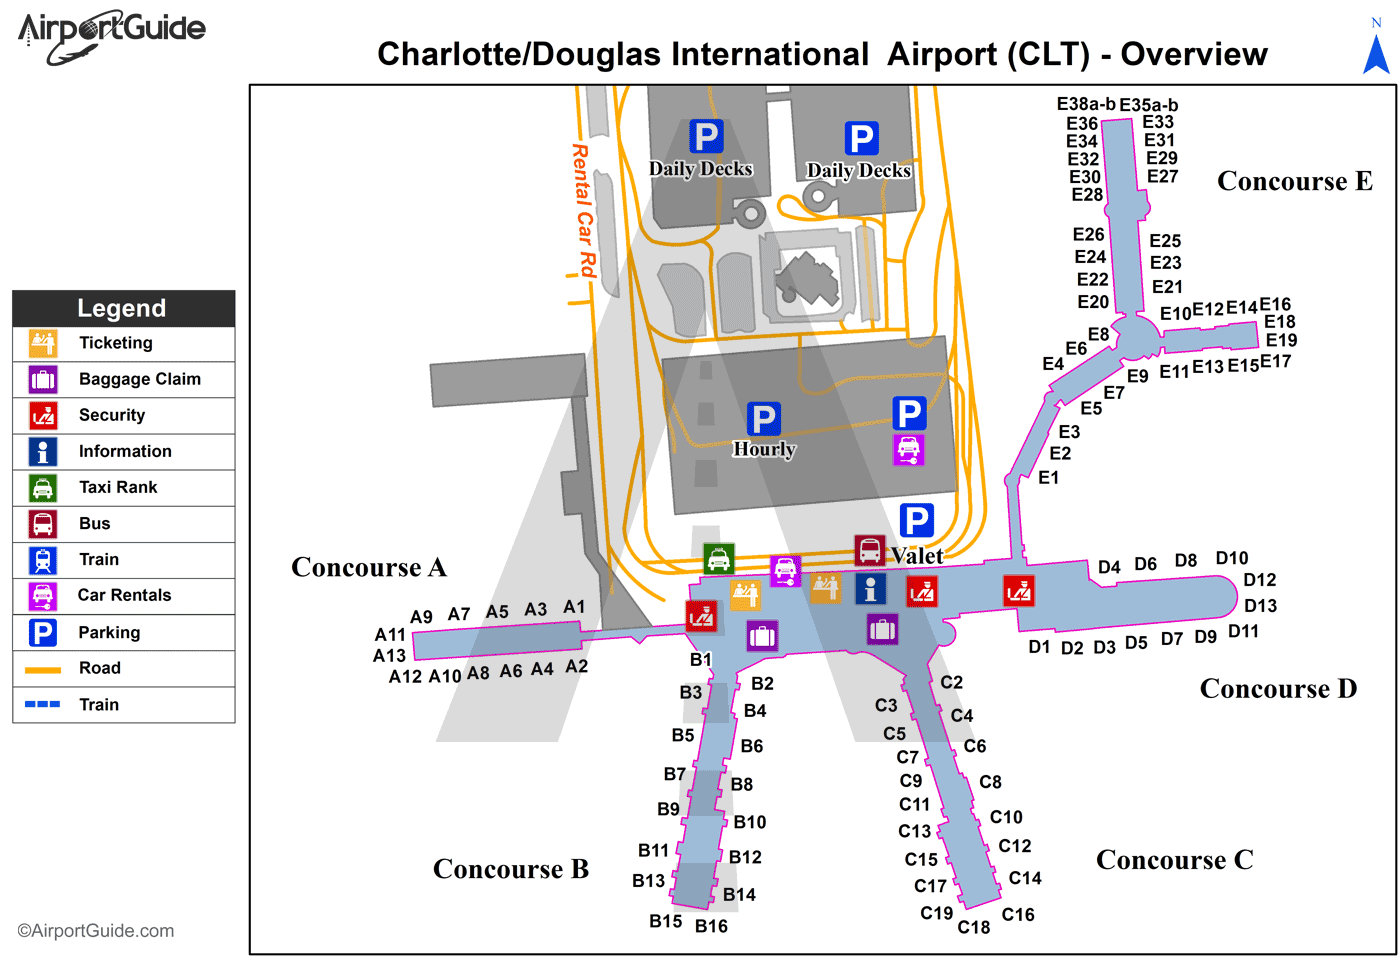 Charlotte/Douglas International Airport - KCLT - CLT - Airport Guide